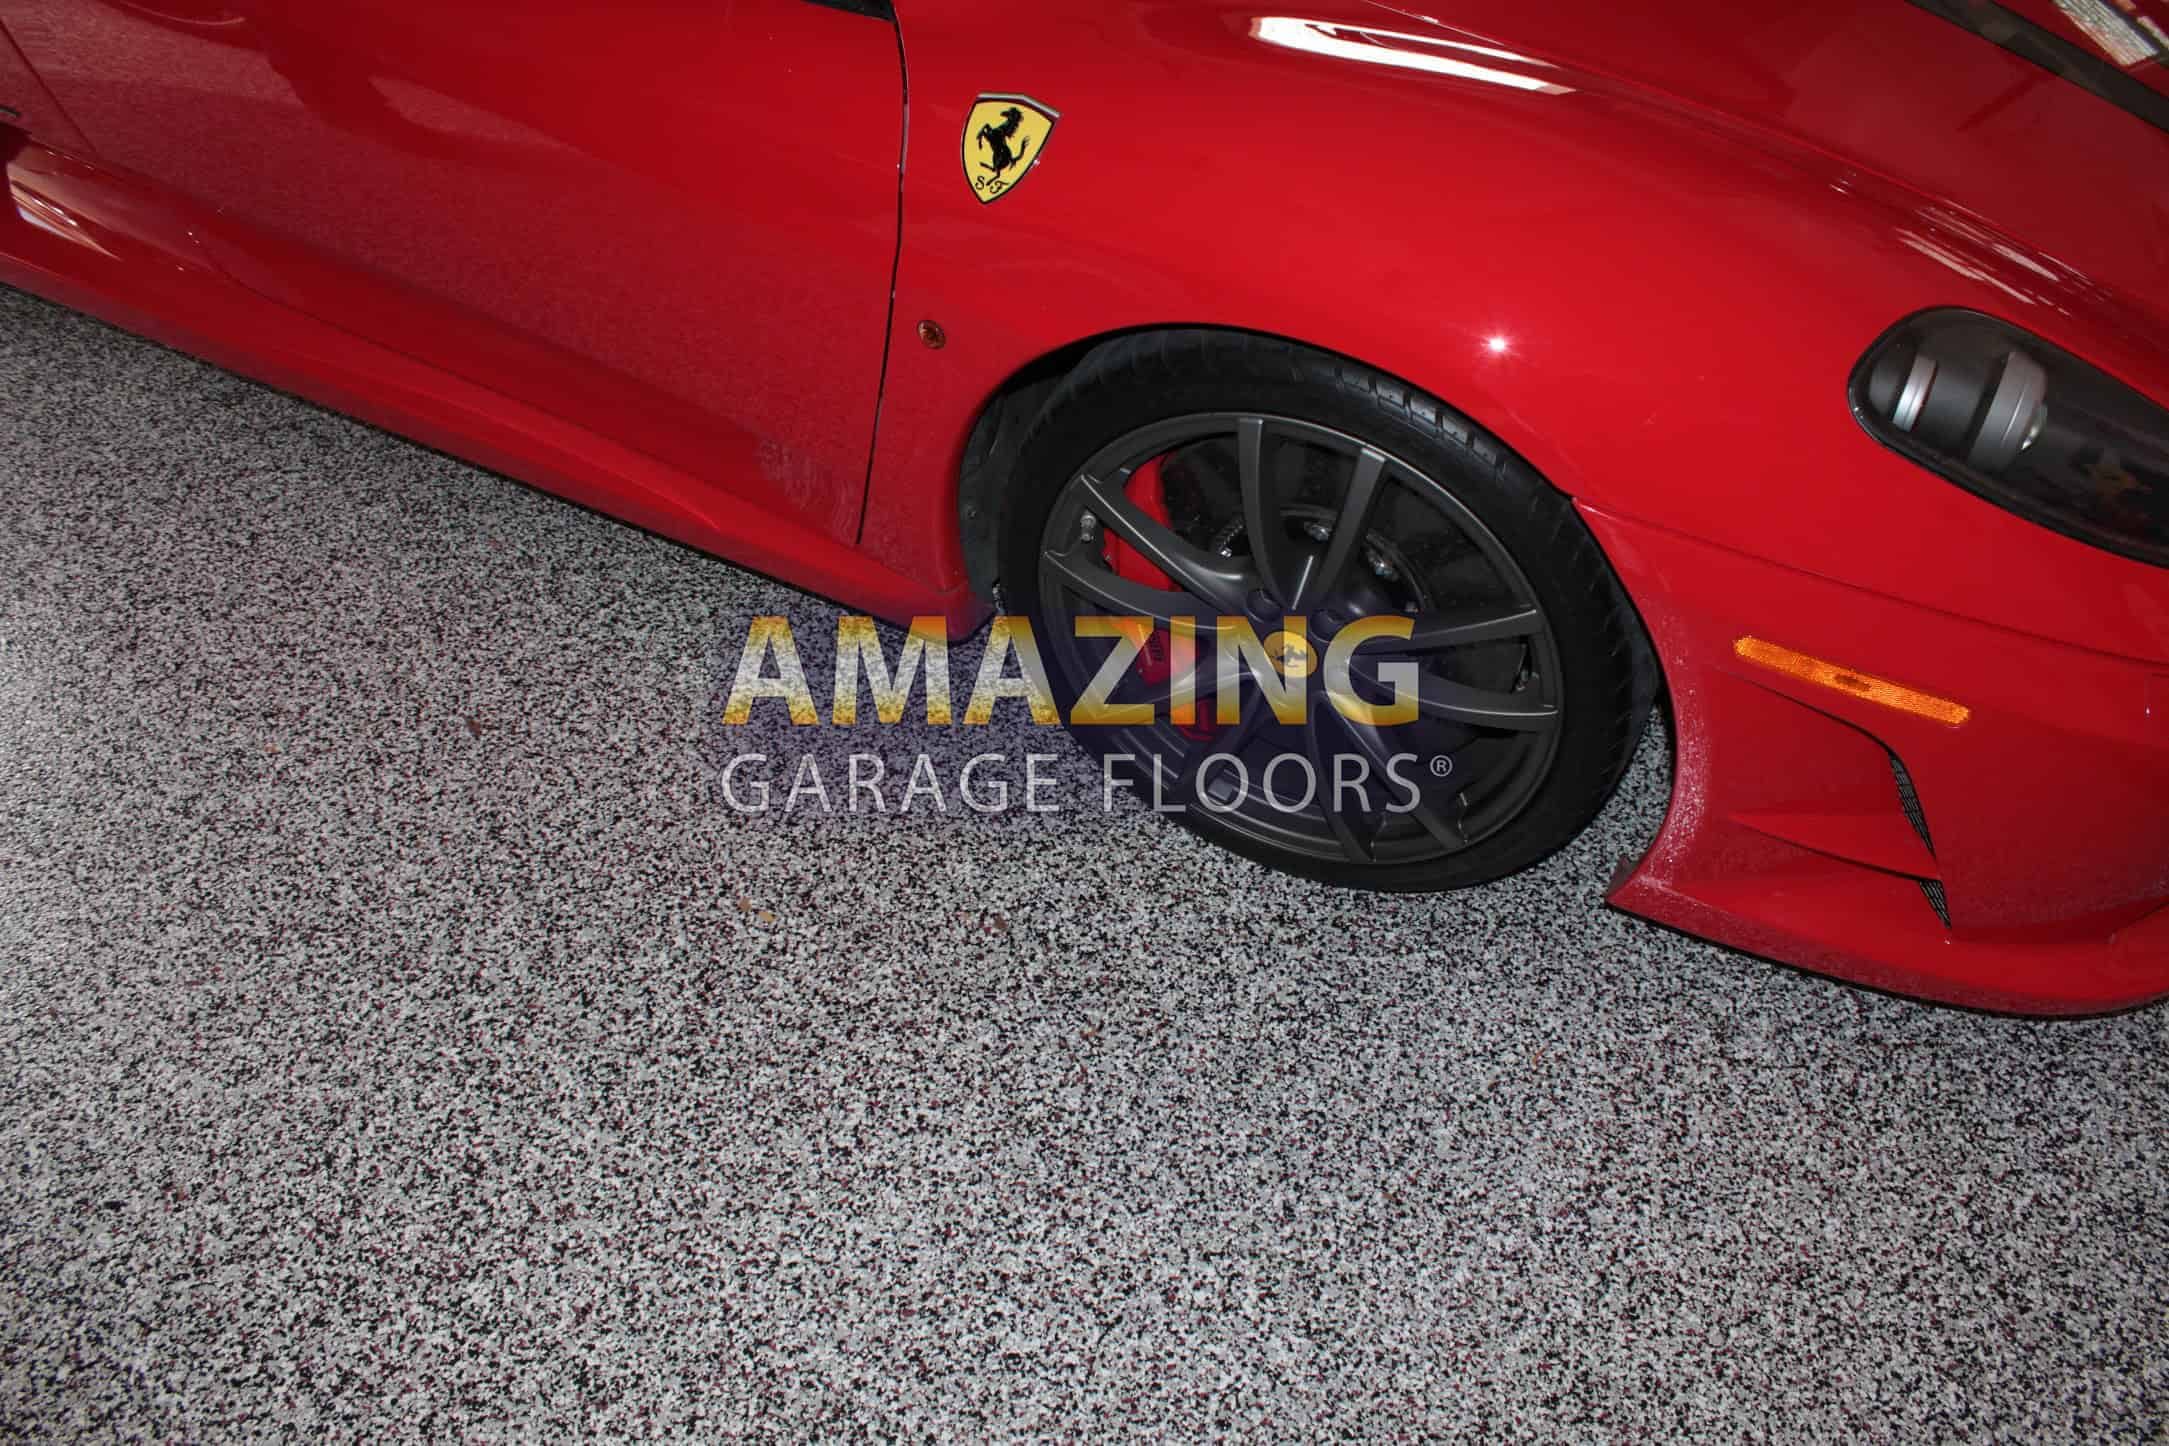 epoxy garage floor kansas city by Amazing Garage Floors